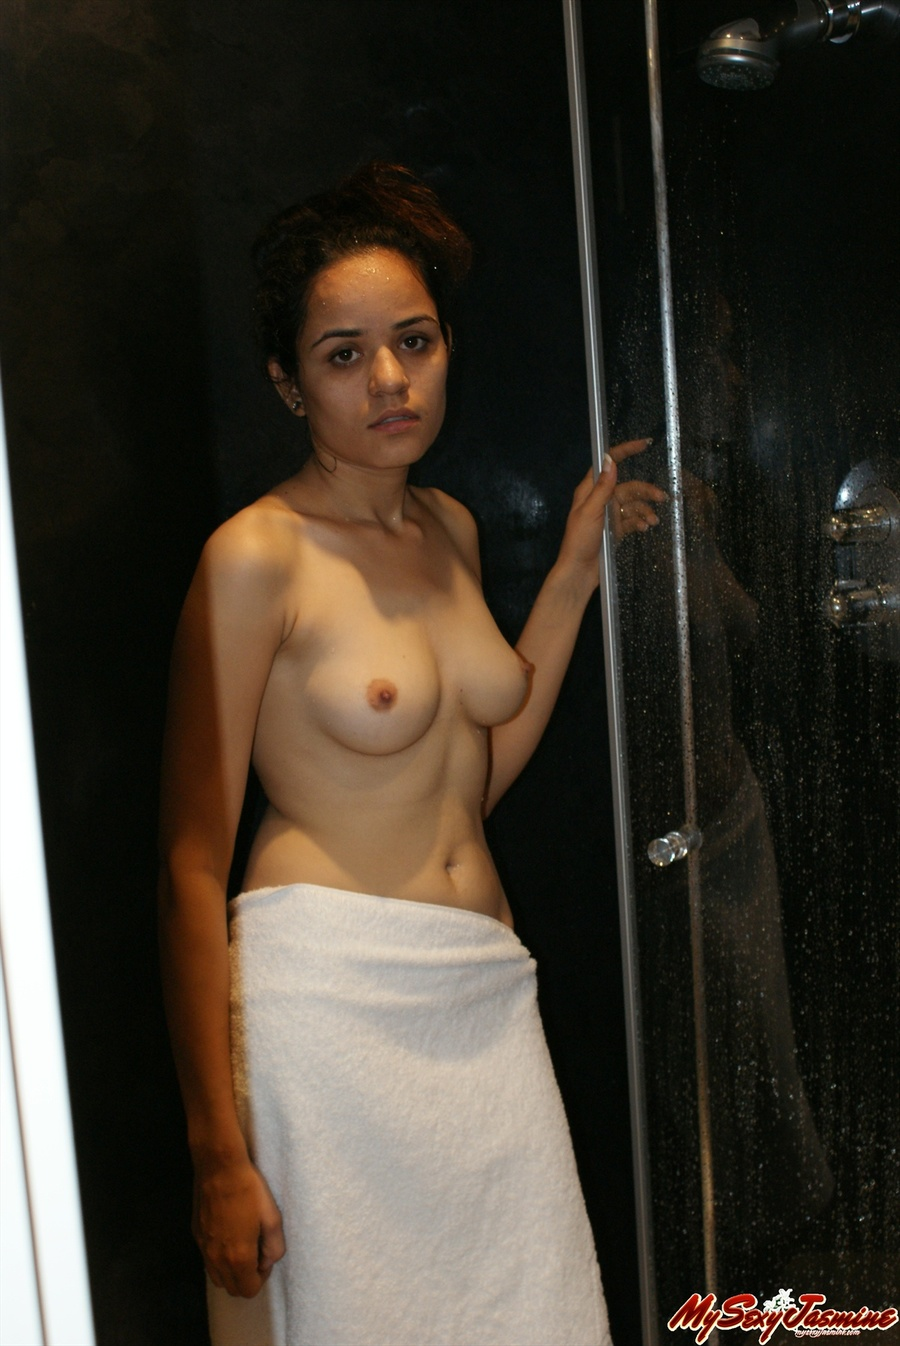 Naked Indian Chick Jasmine Taking Hot Bath And Demonstrating Her Delights Xxxonxxx Pic 1